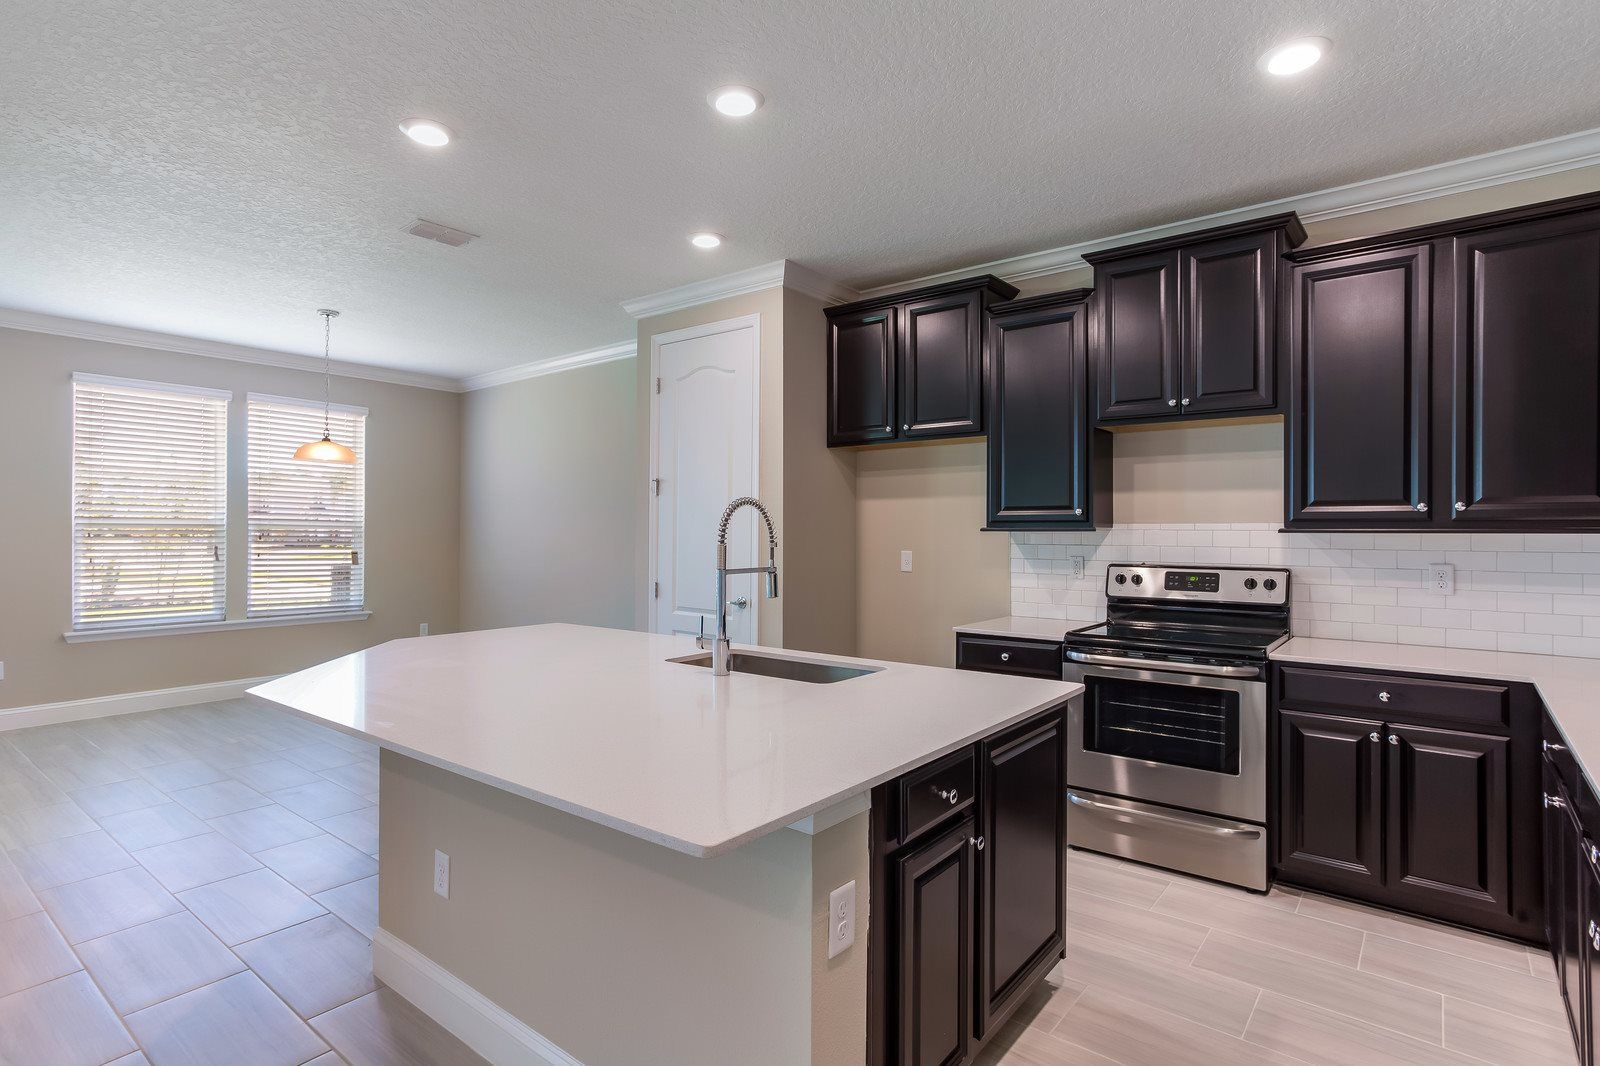 Kitchen featured in the PRINCETON By Lennar in Jacksonville-St. Augustine, FL